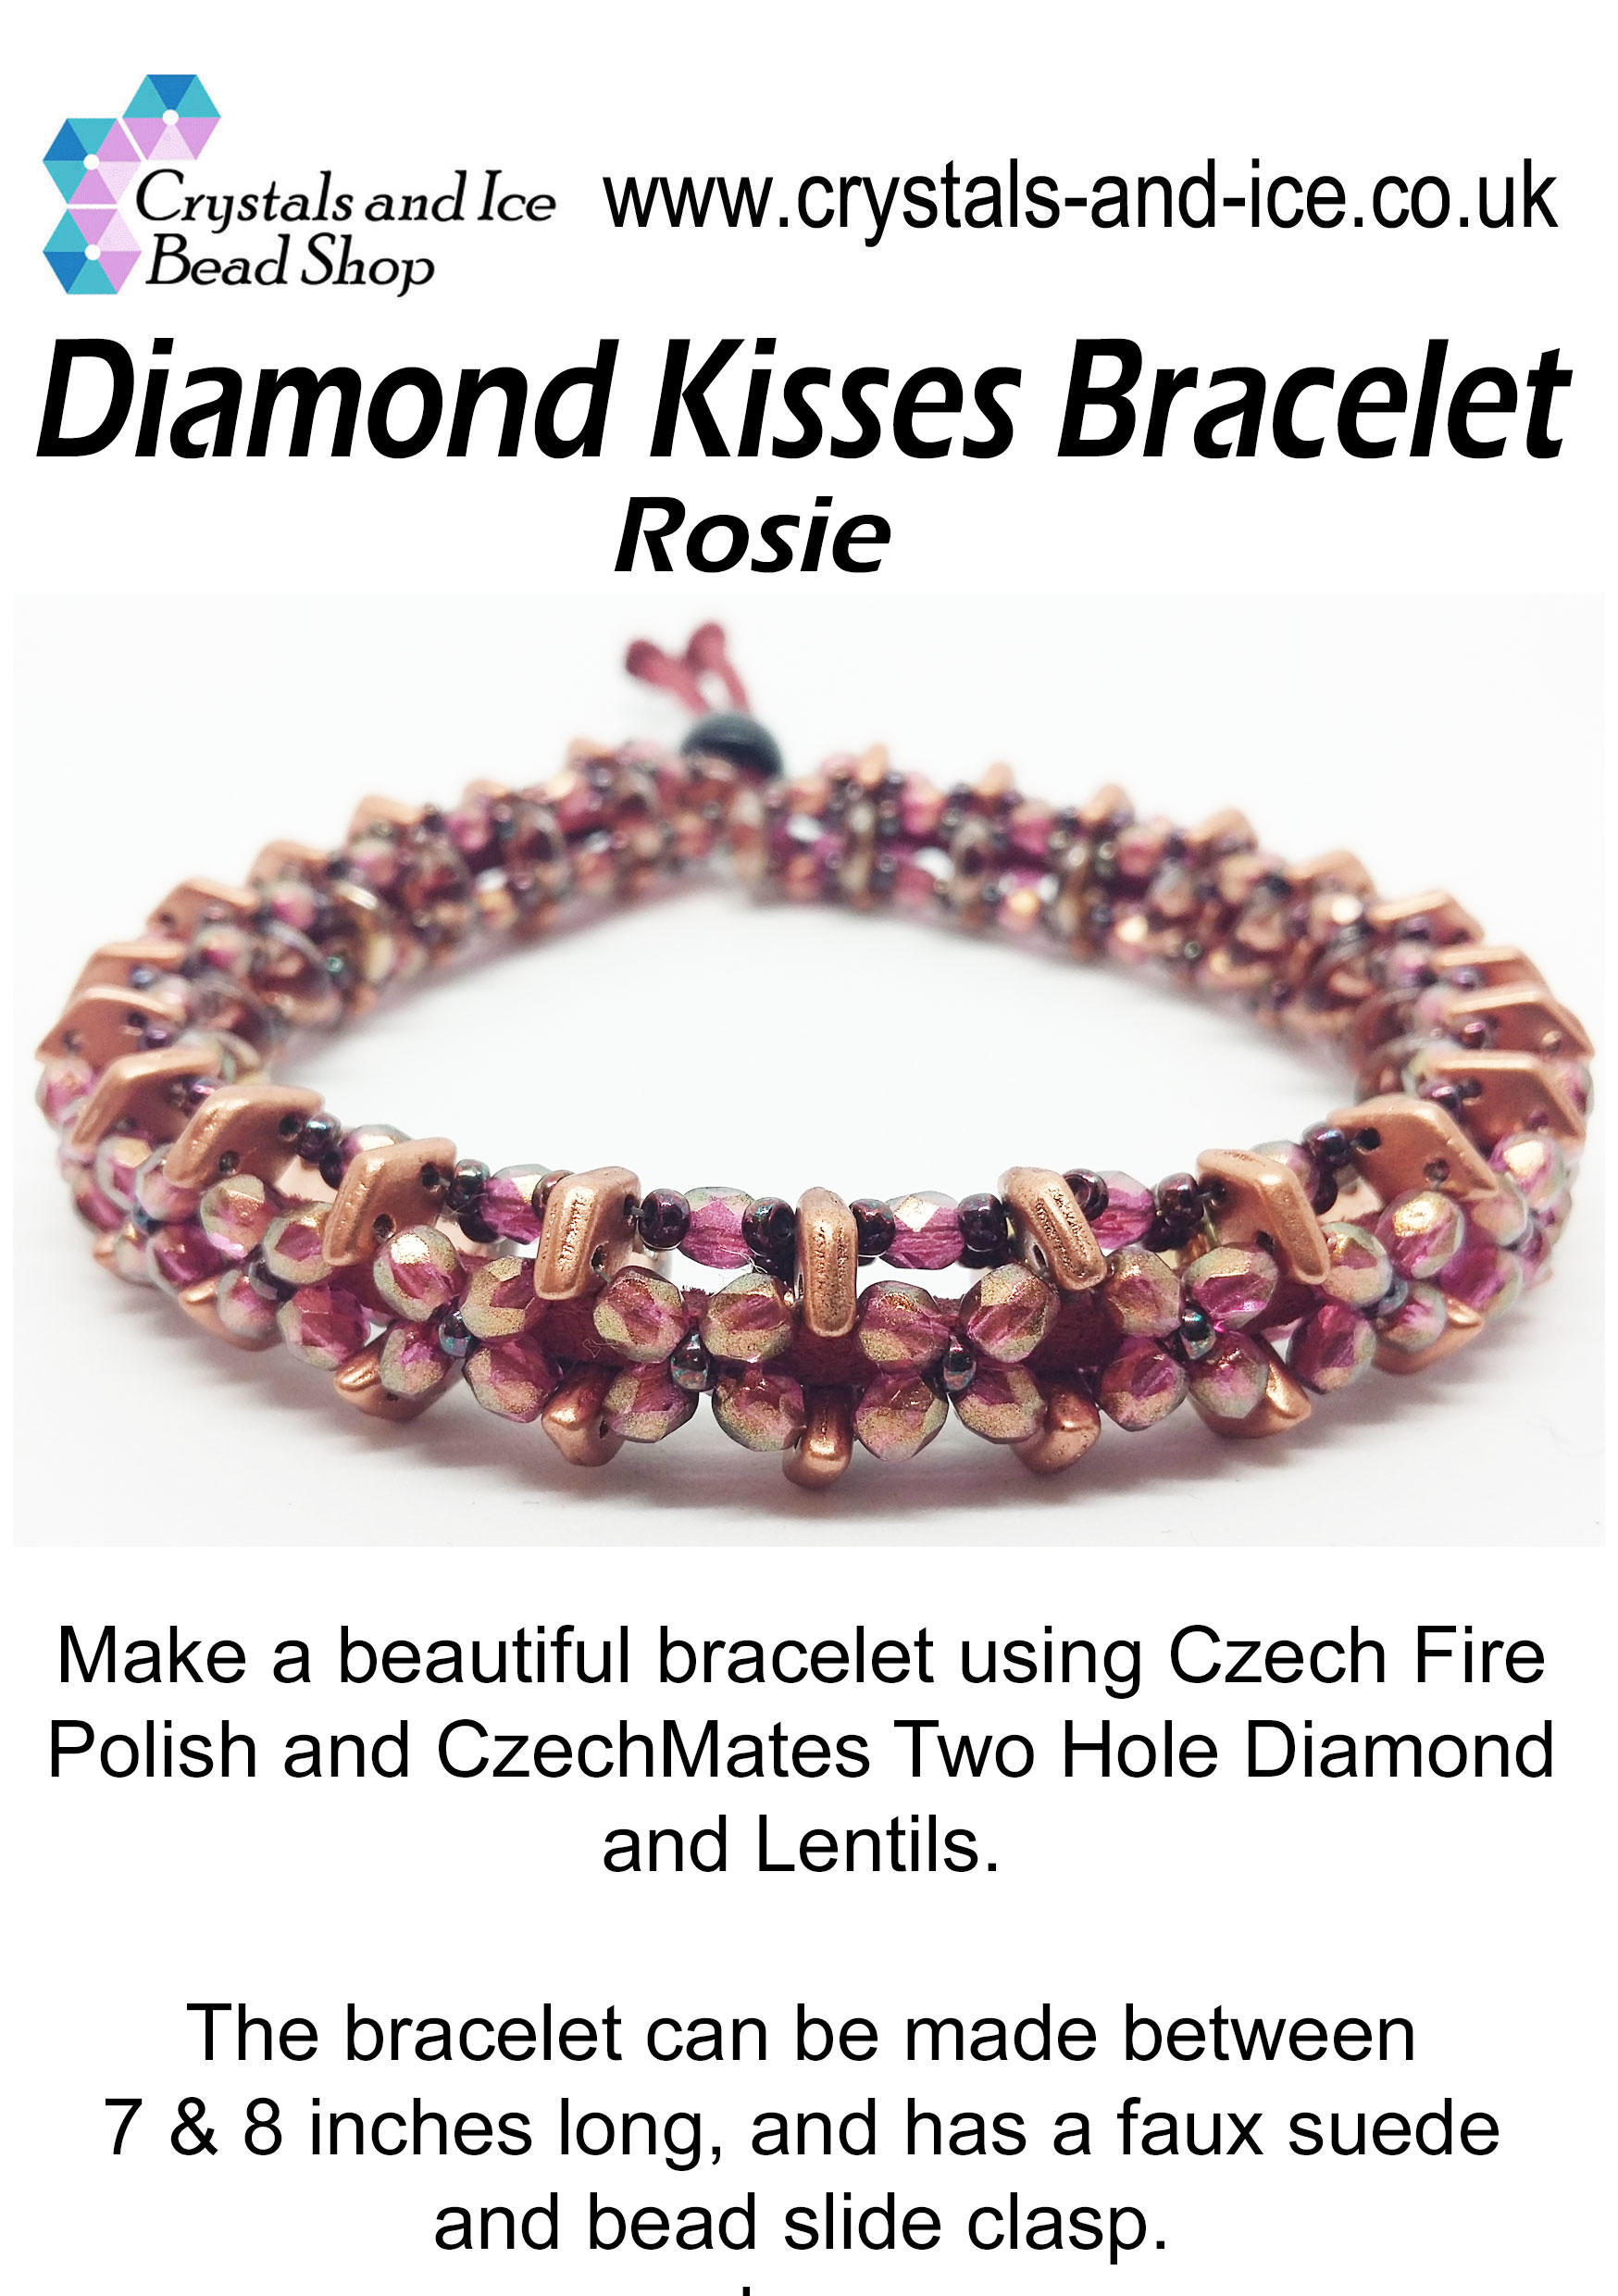 Diamond Kisses Bracelet Kit - Rosie